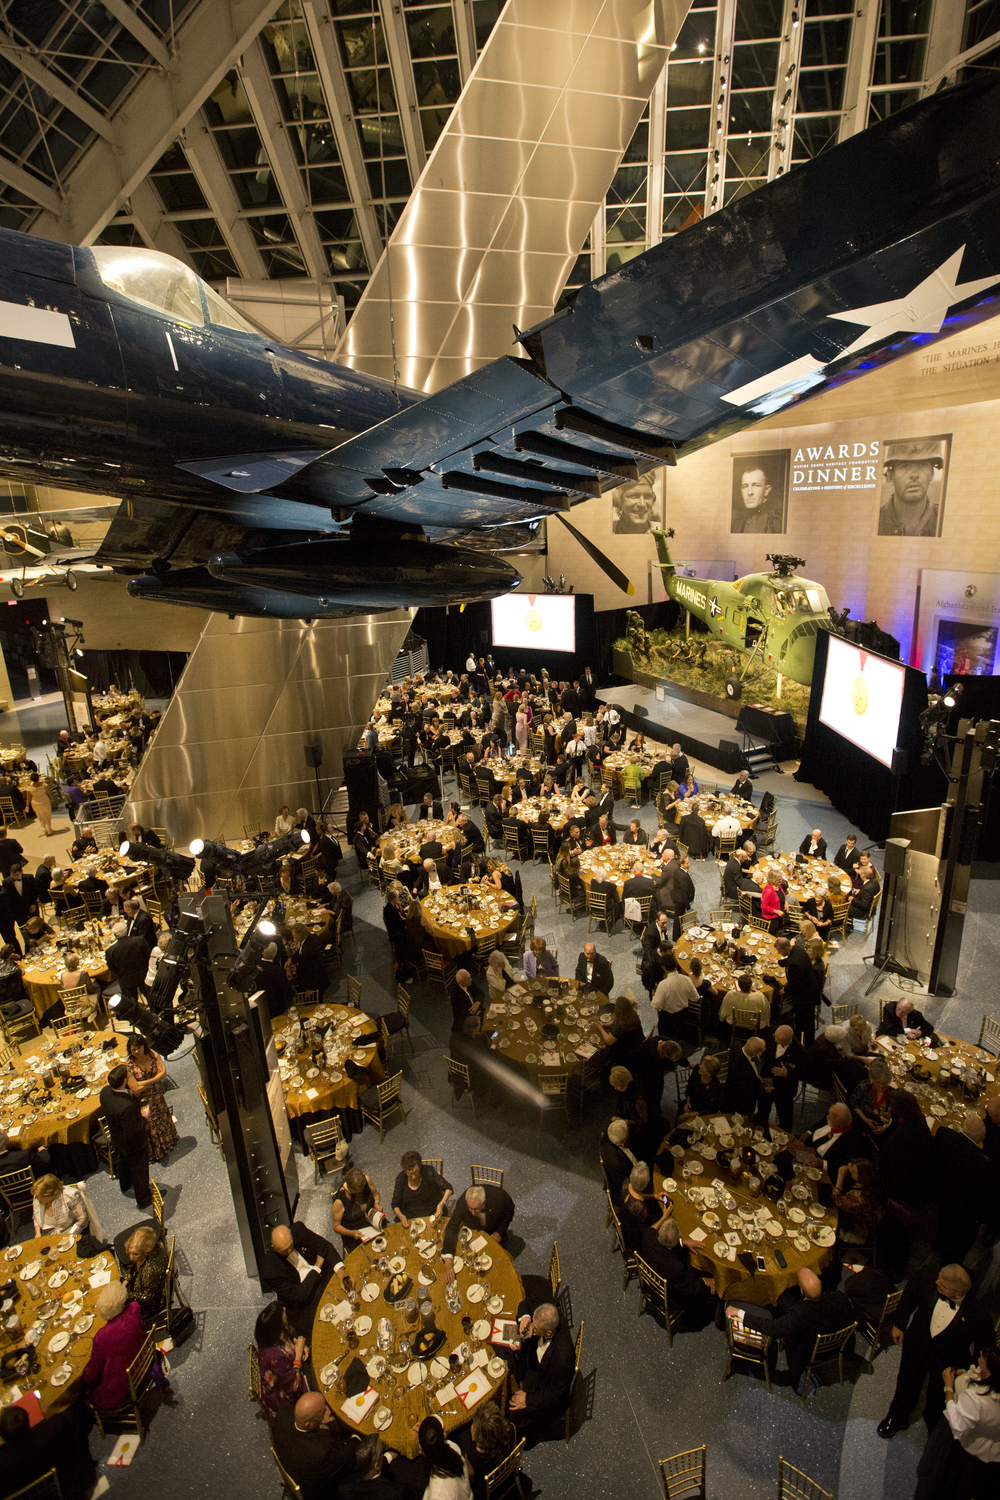 The National Museum of the Marine Corps at the Annual Awards Dinner